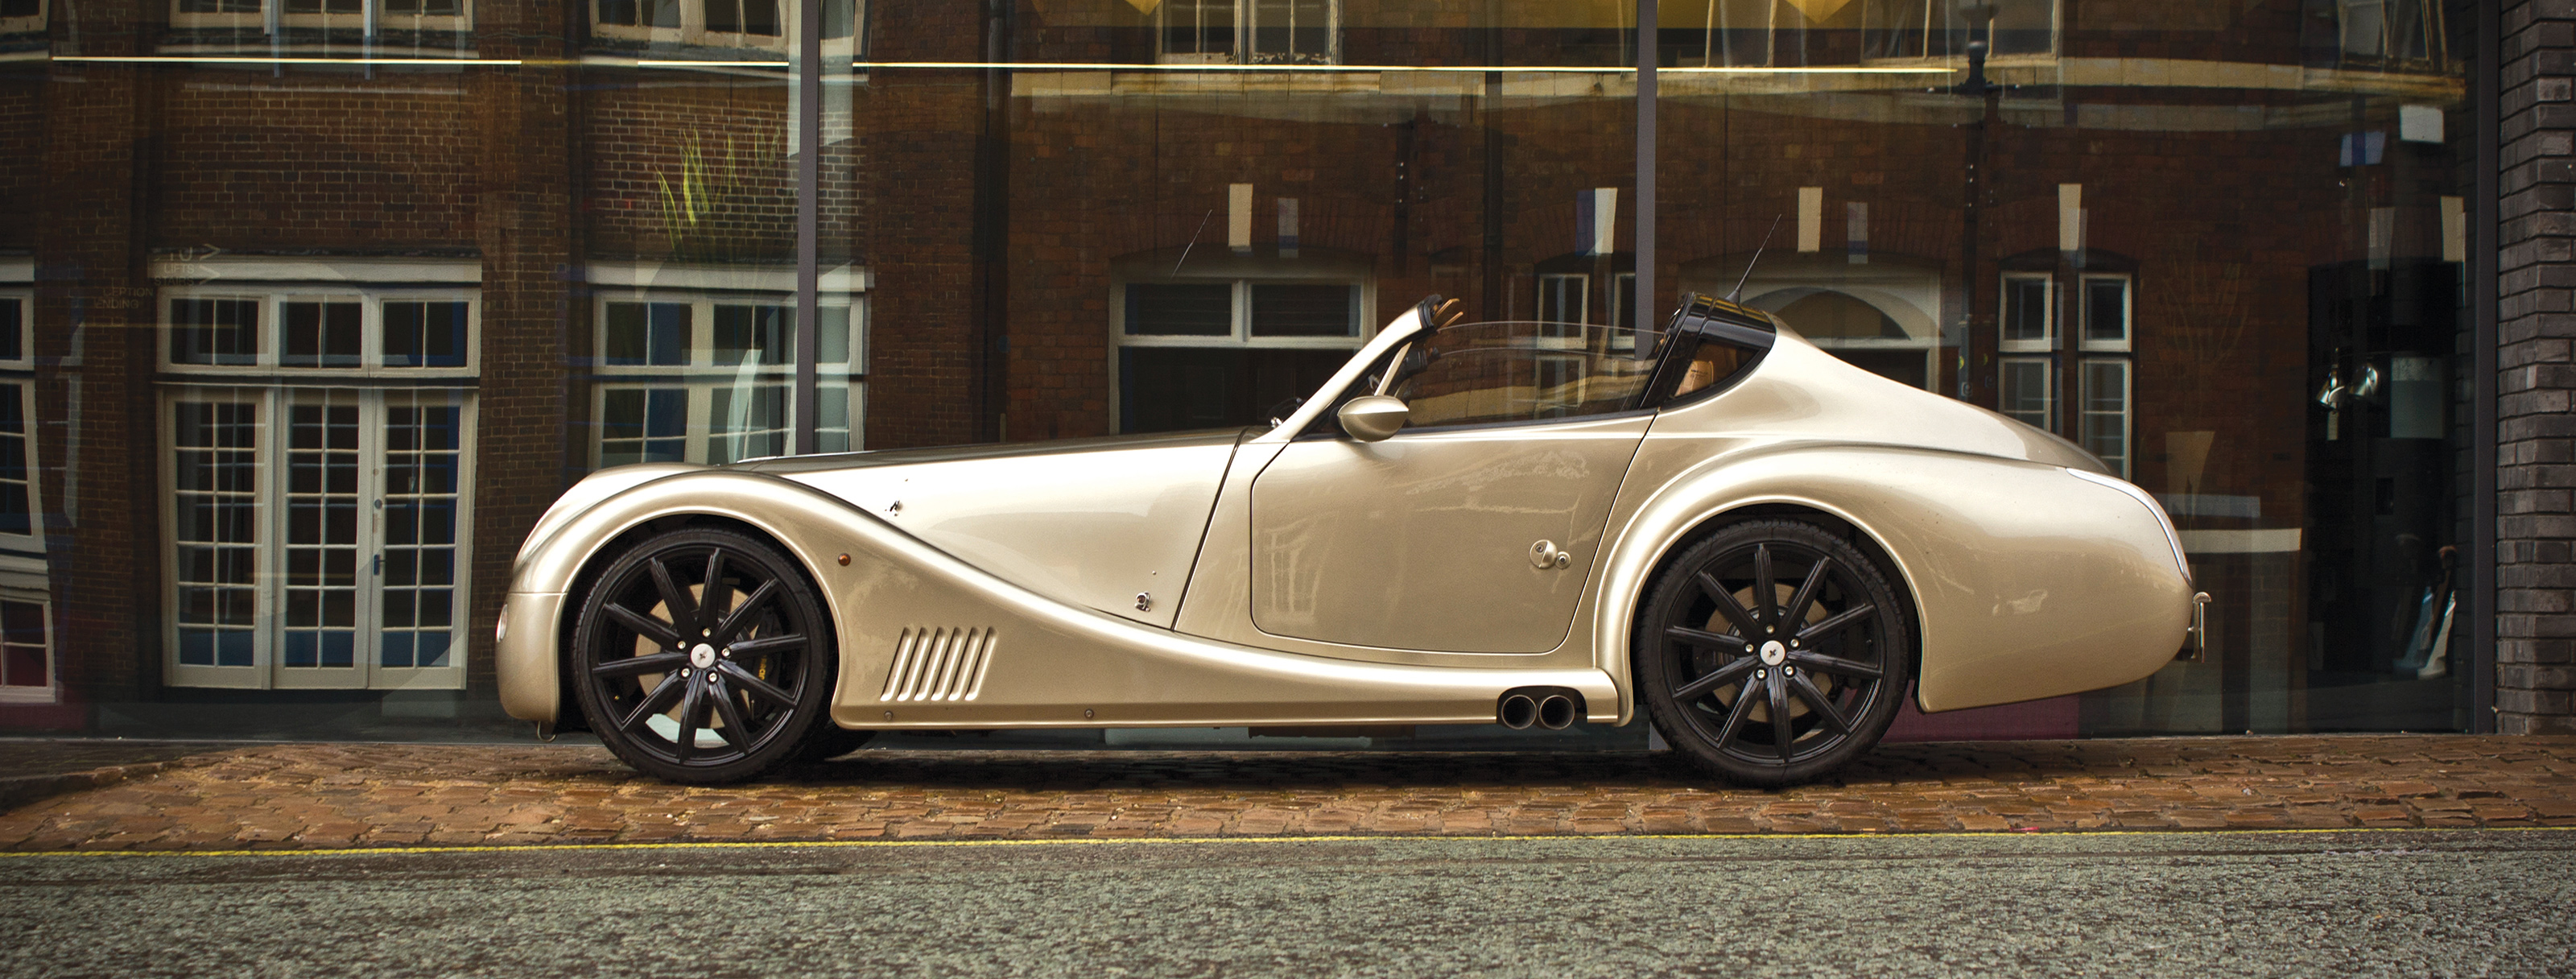 Morgan Kingdom Magazine We carry a full line of quality new vehicles as well as used cars. kingdom magazine